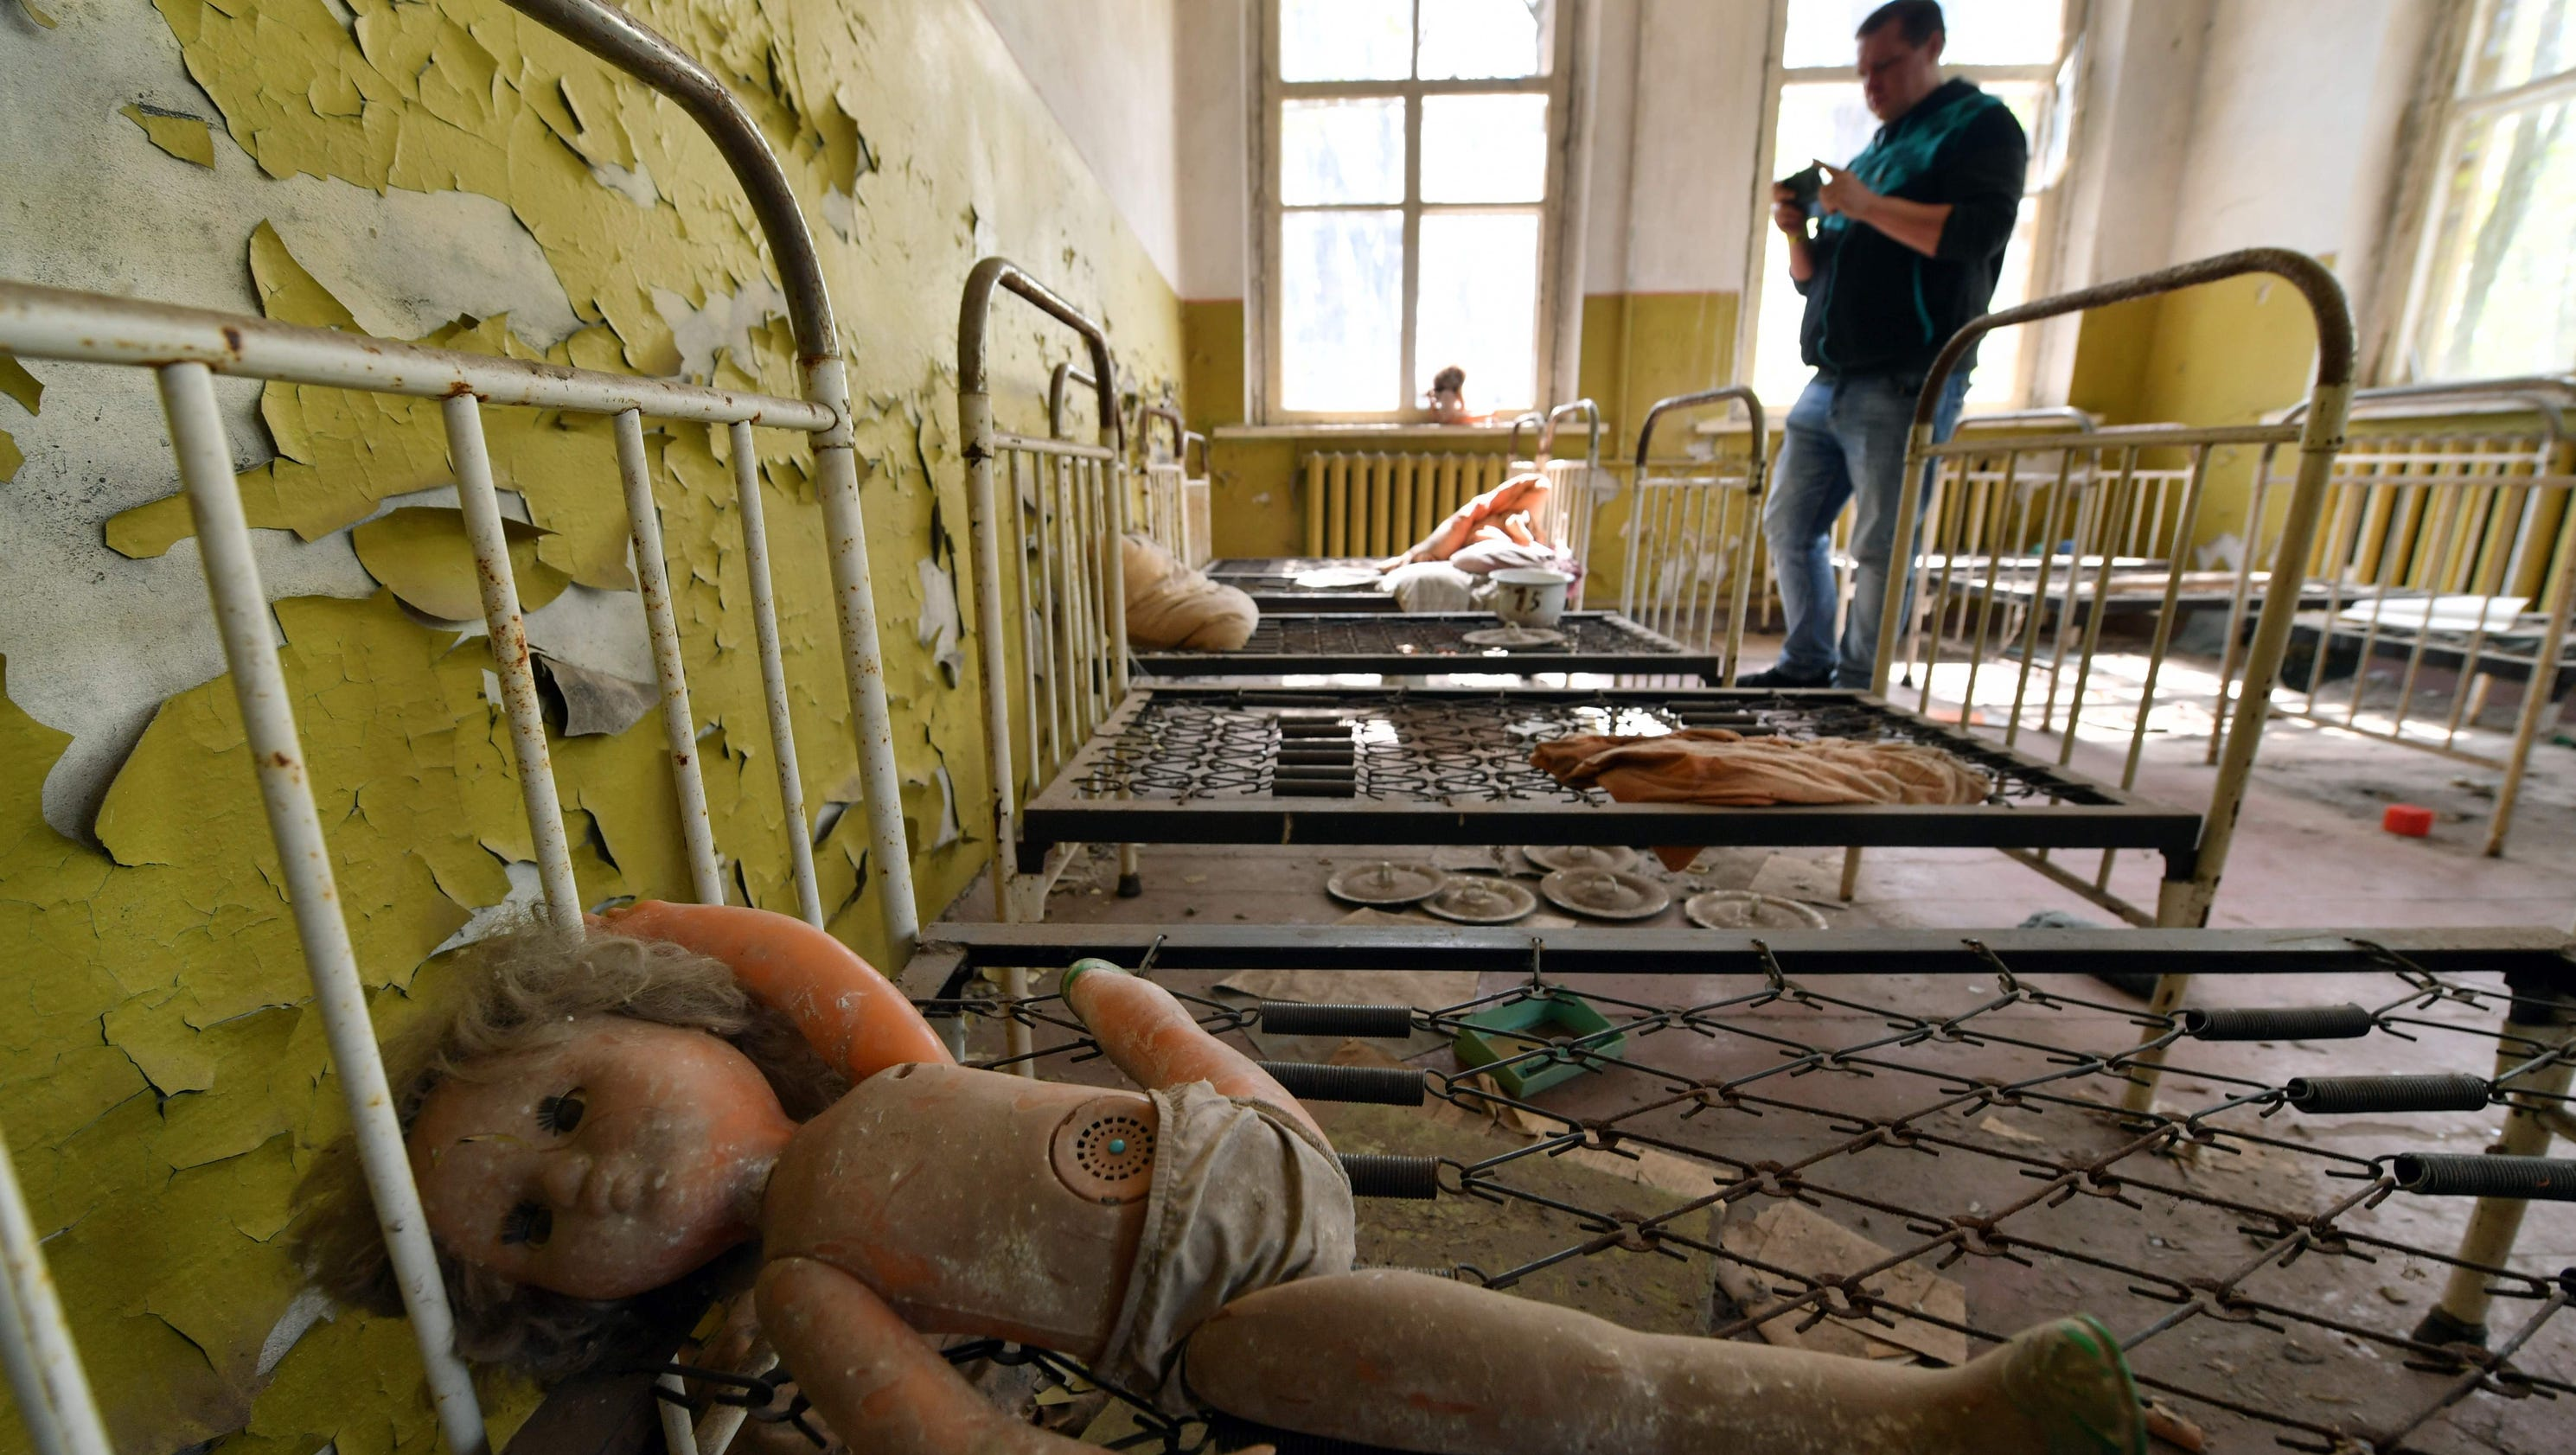 32 years after the Chernobyl disaster